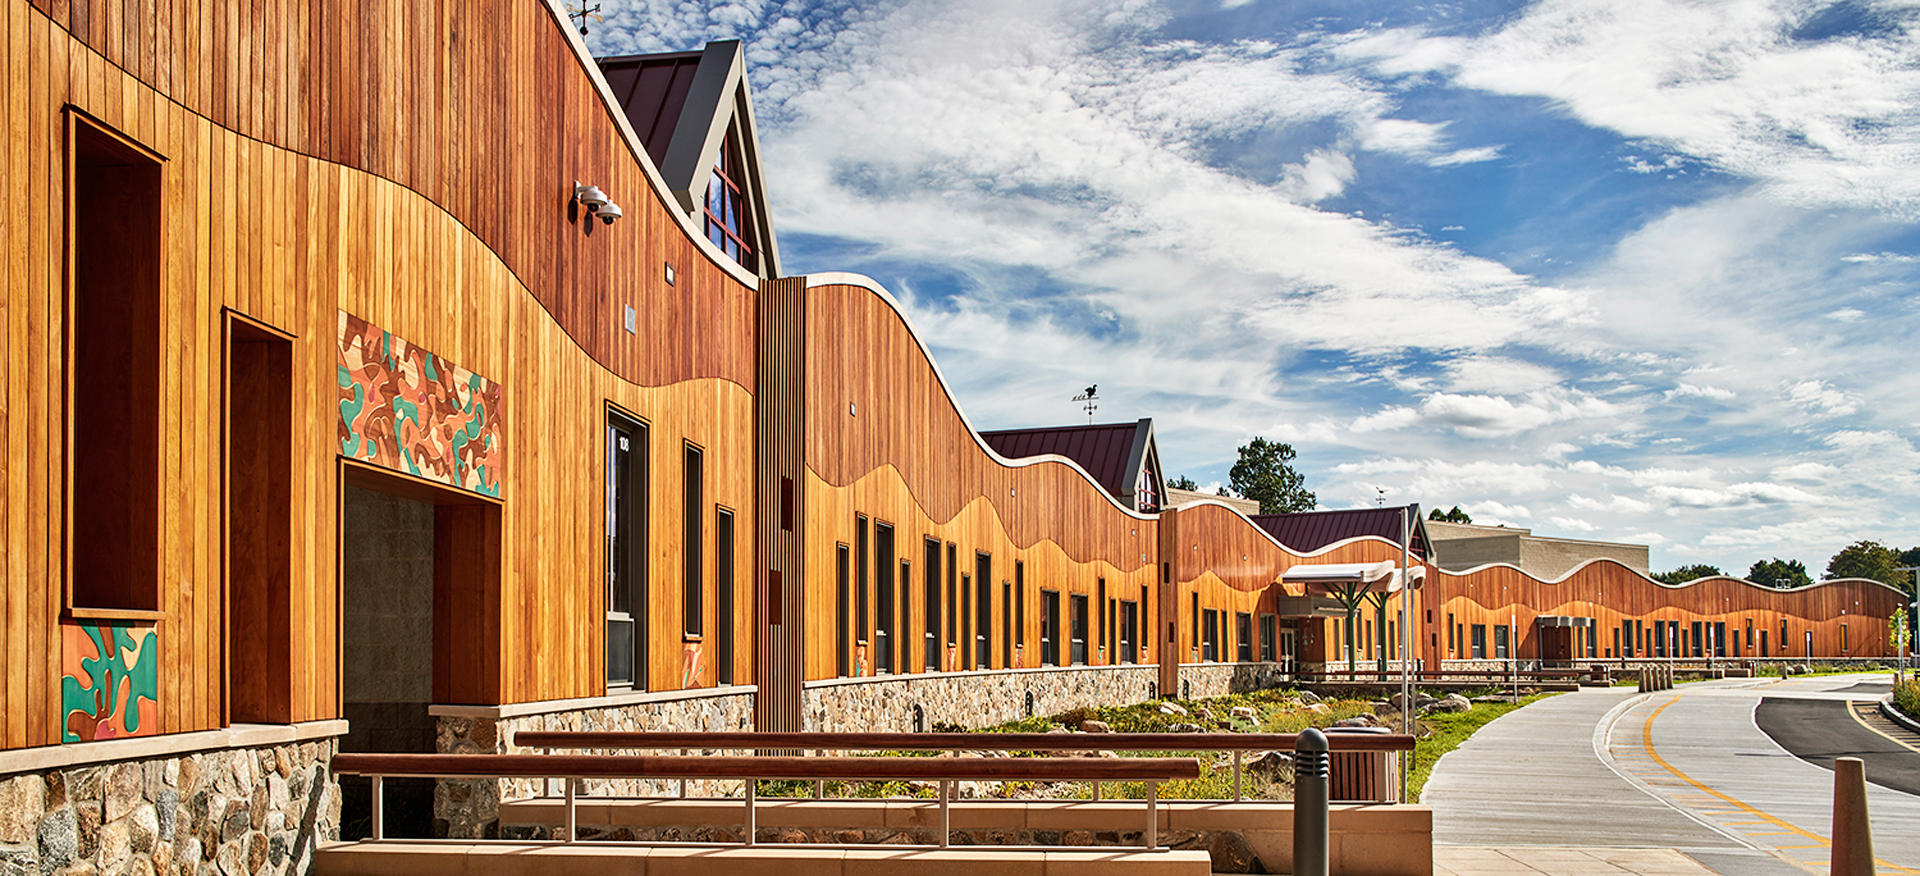 The new Sandy Hook school (Robert Benson Photography, courtesy Svigals + Partners)